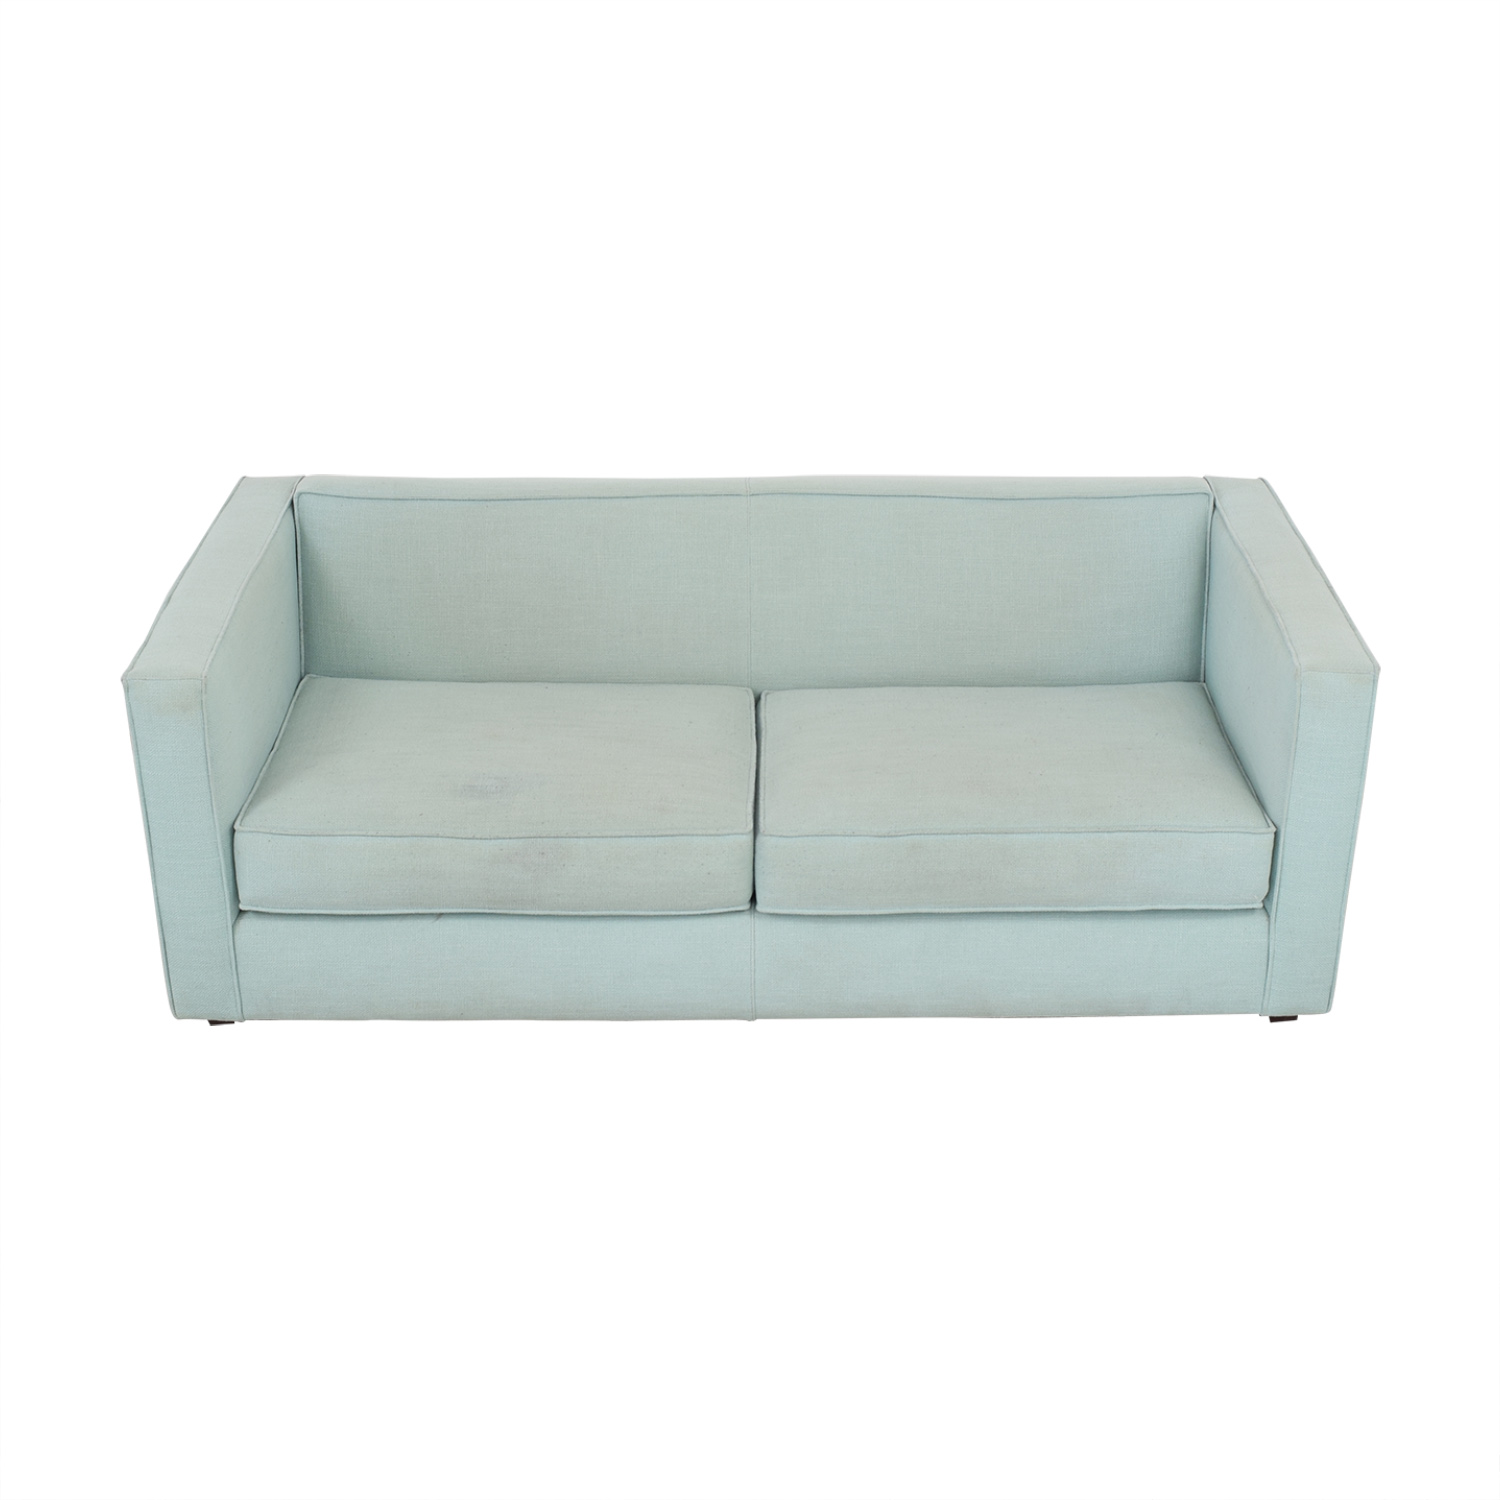 CB2 CB2 Club Sofa nyc